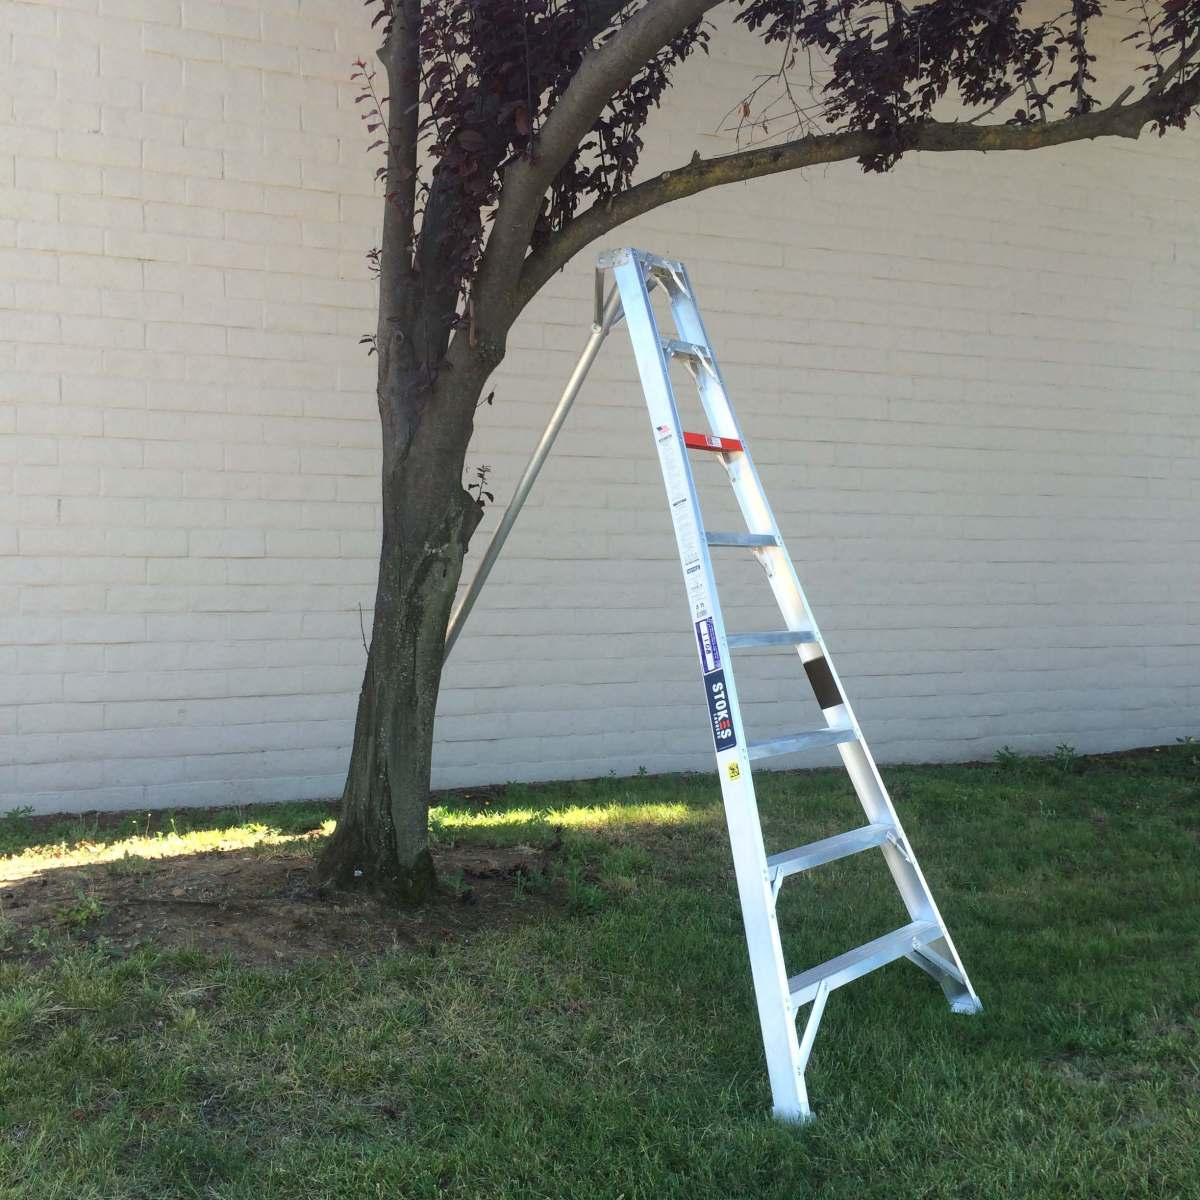 Orchard Ladders - Industrial Ladder and Scaffolding, Inc